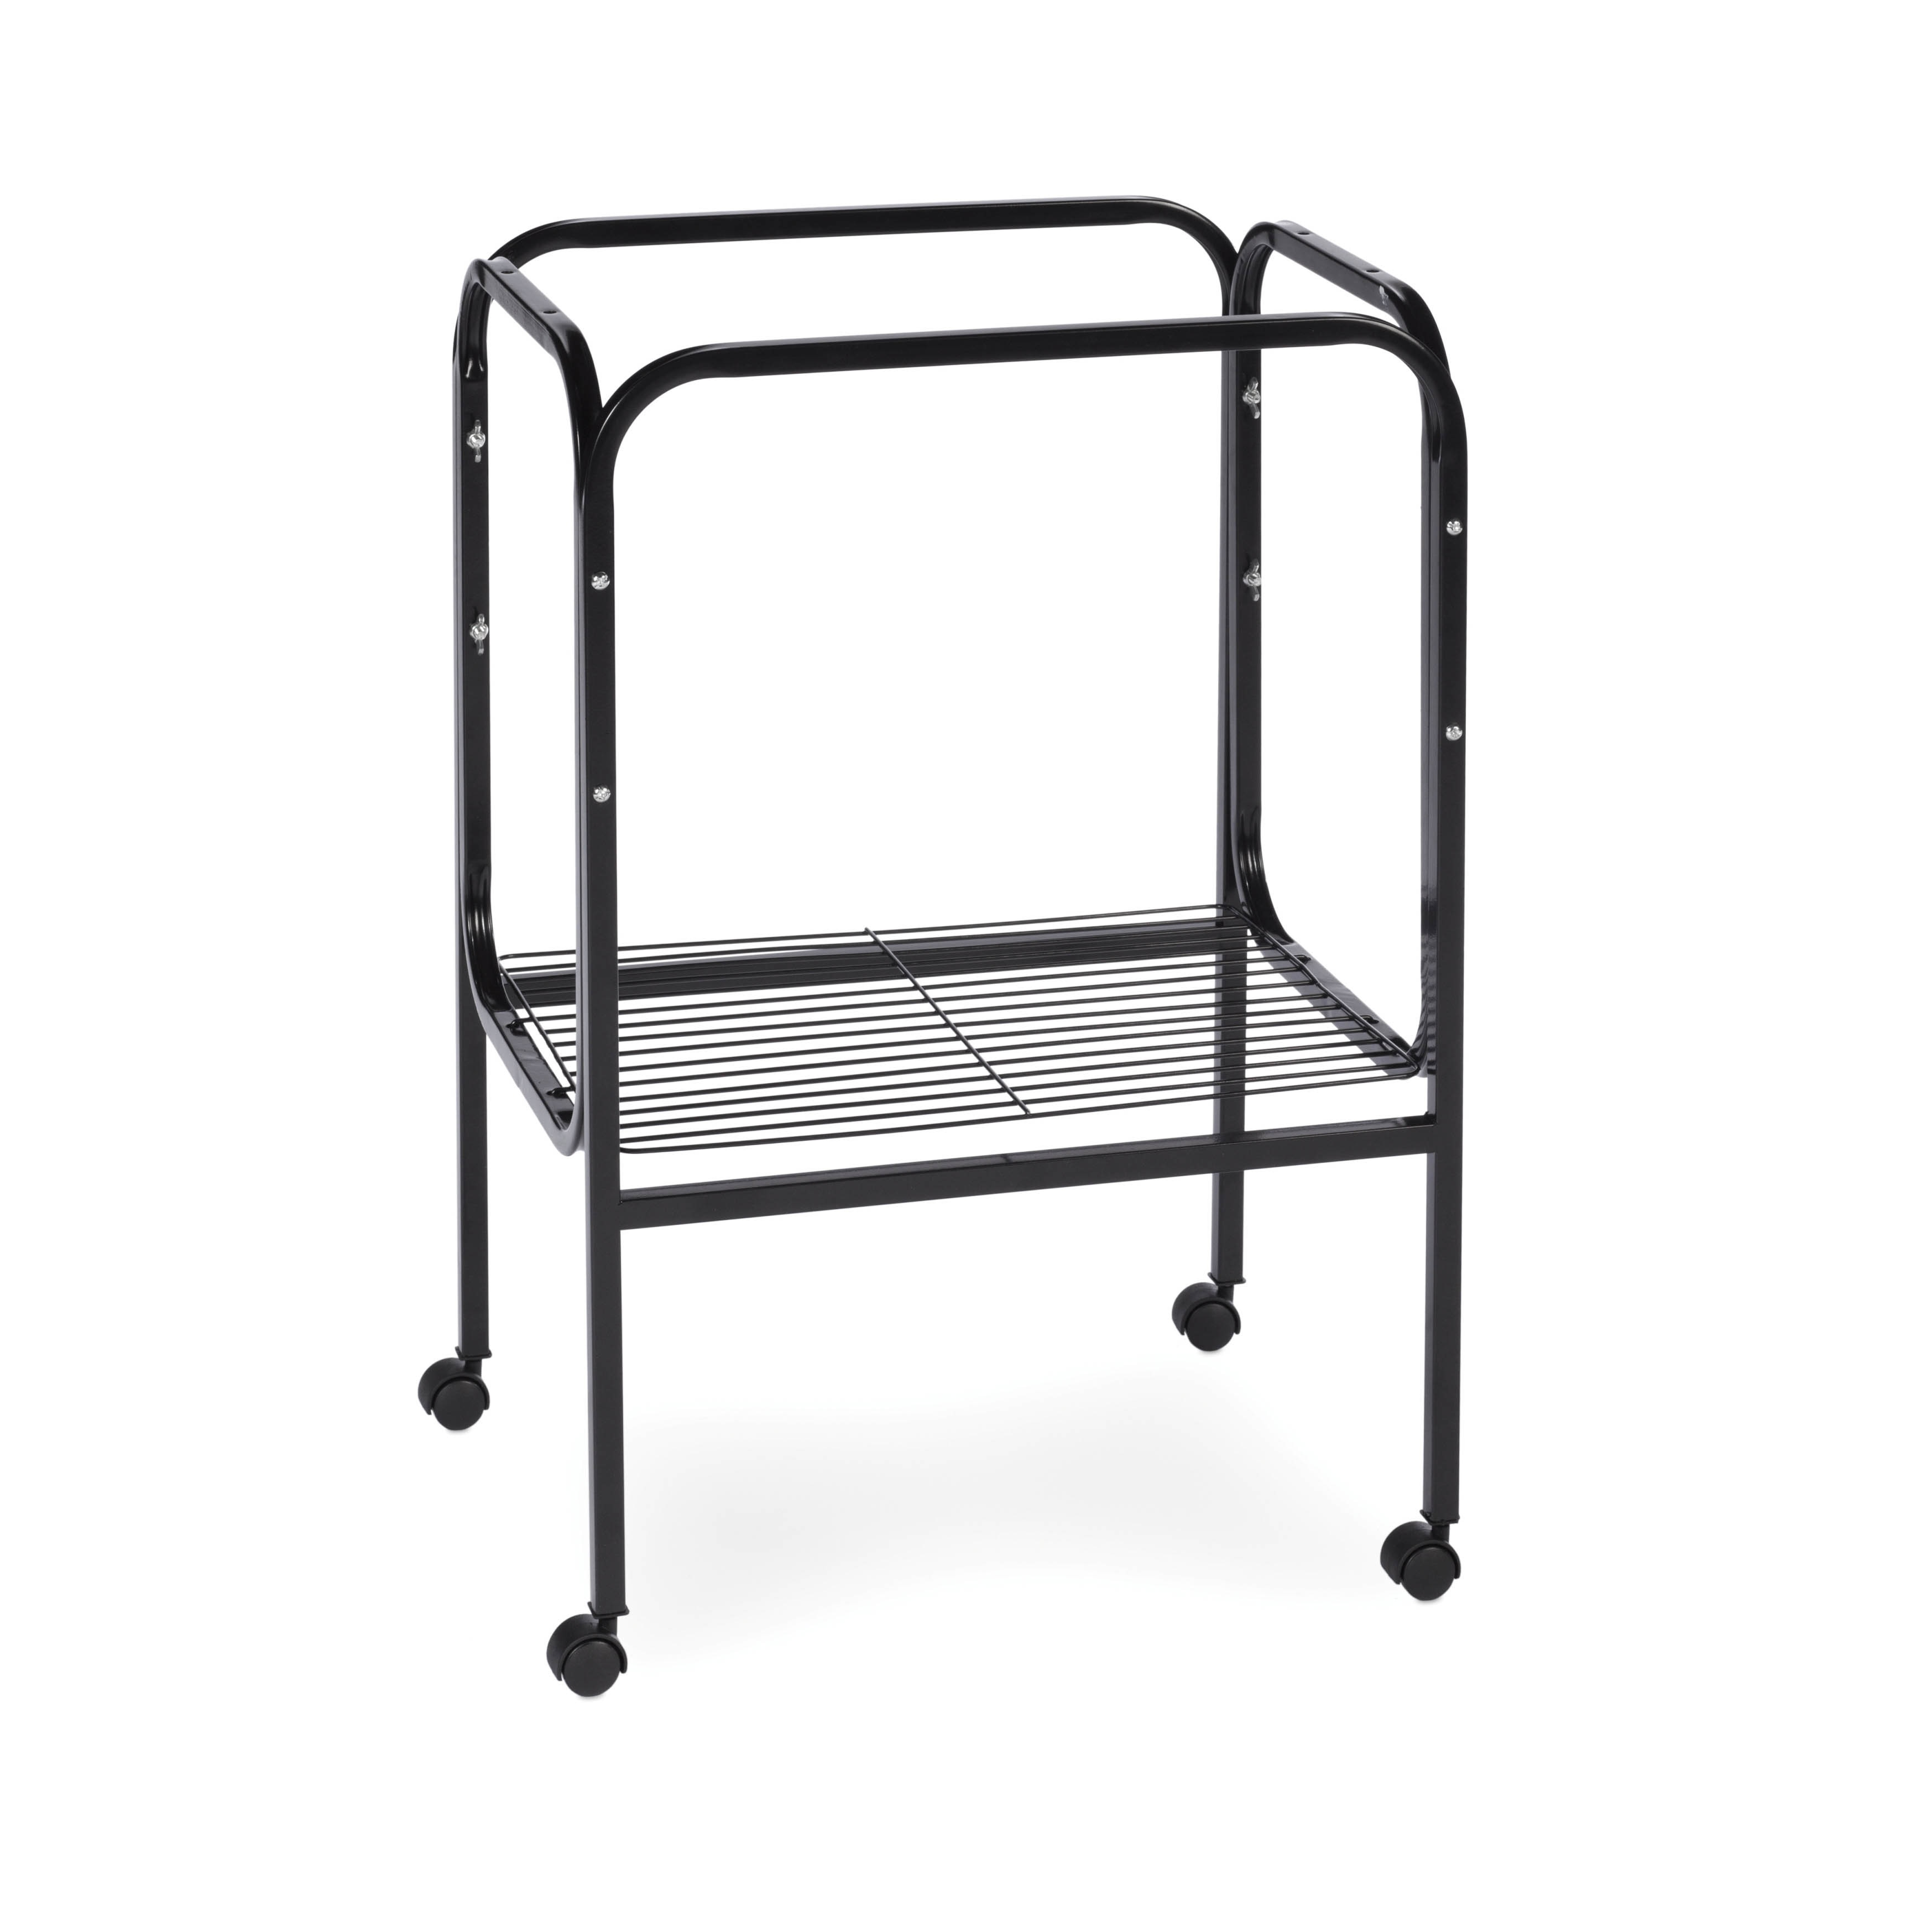 Prevue Pet Products Bird Cage Stand with Shelf (Black)